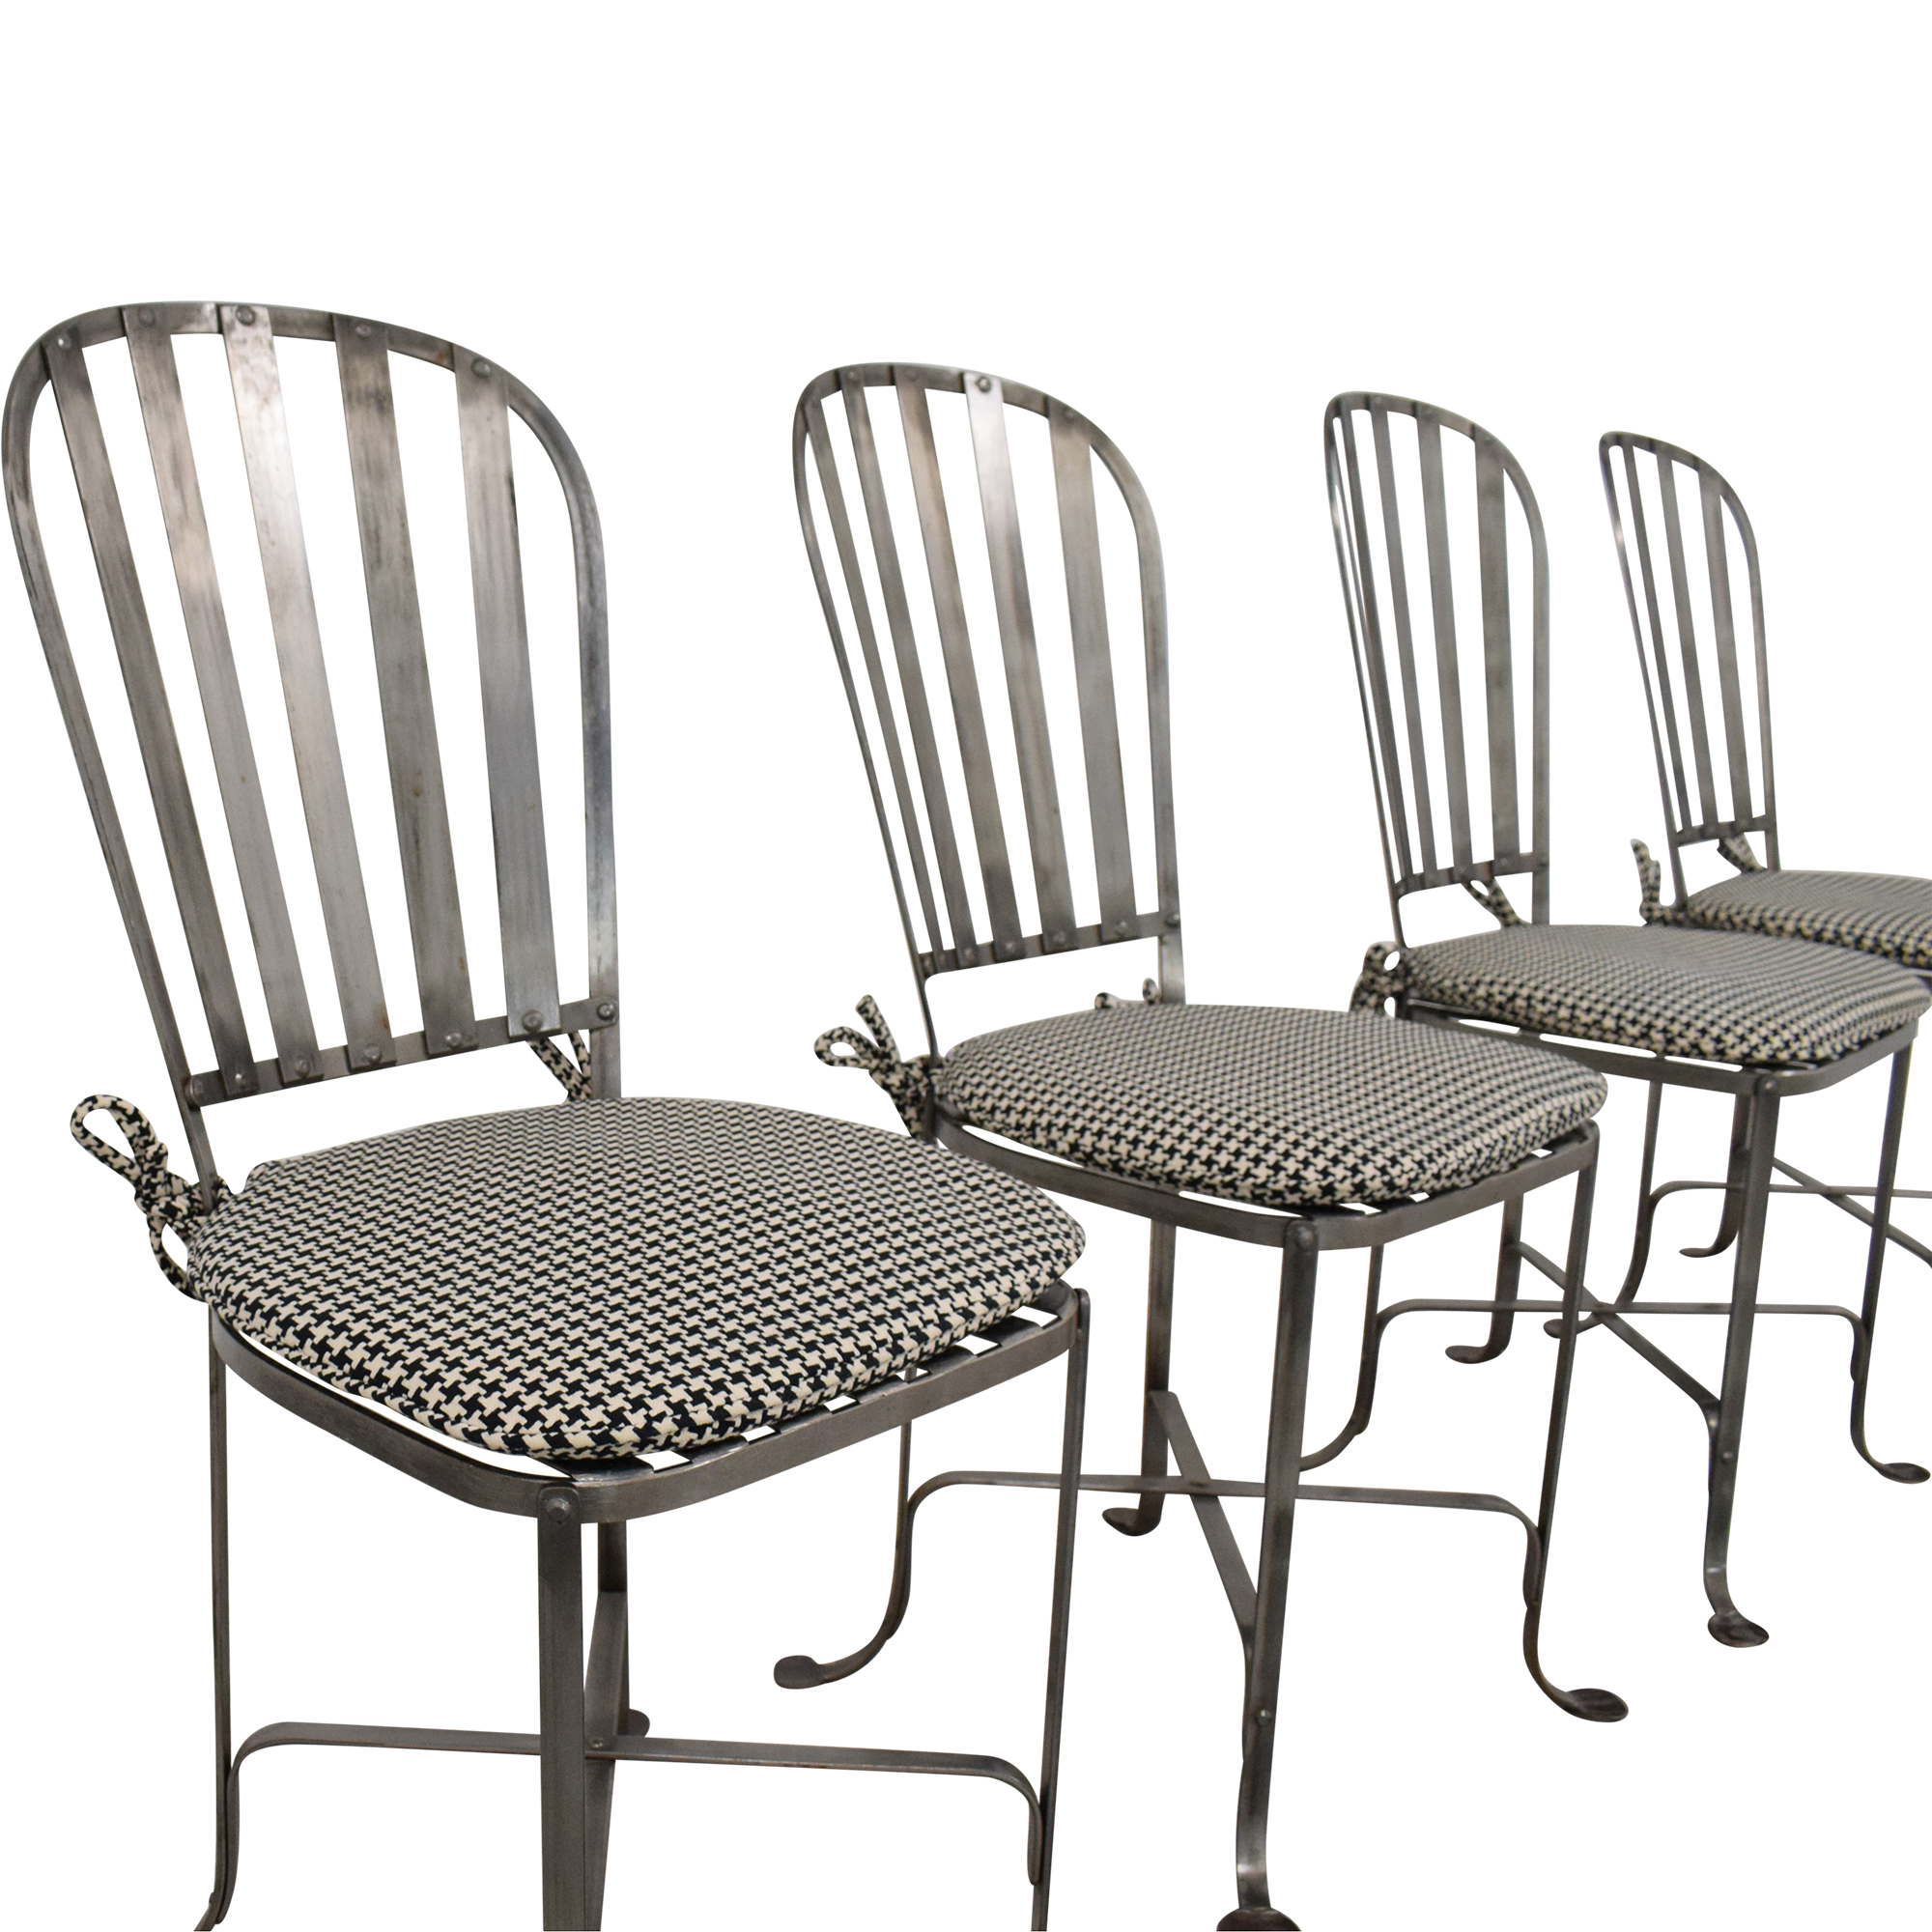 Bloomingdale's Bloomingdale's Bistro Chairs with Cushions for sale